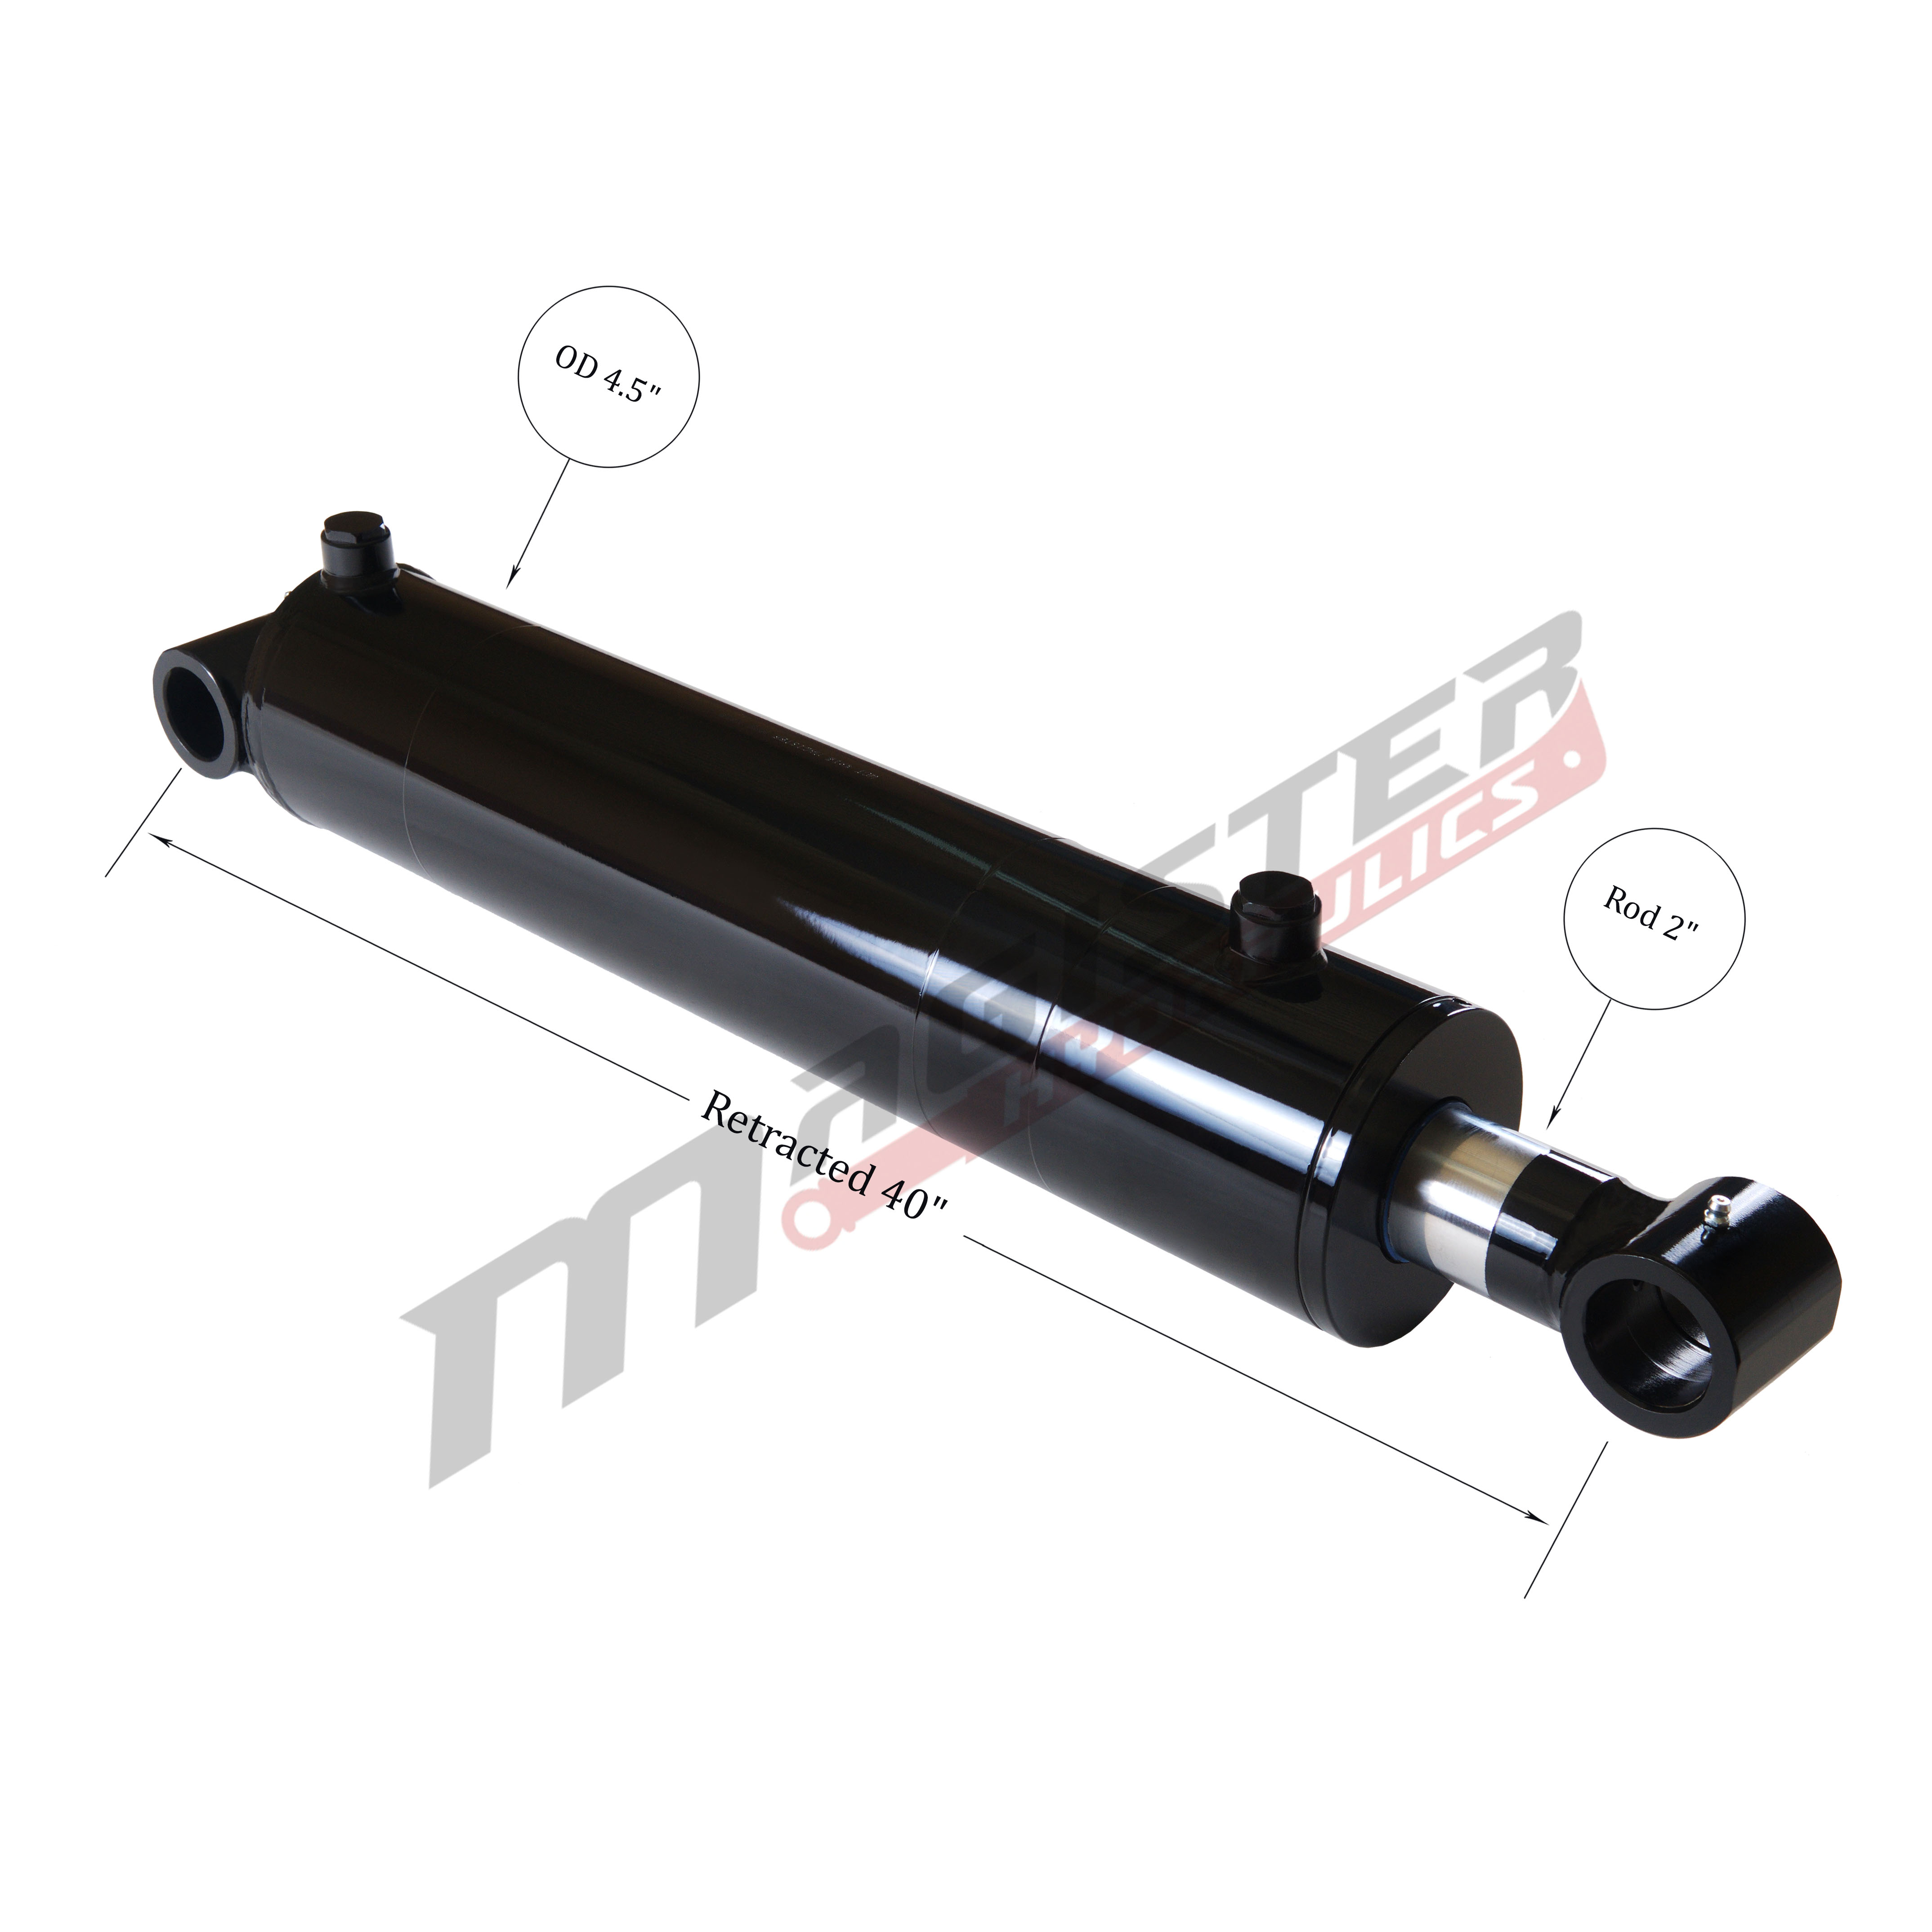 4 bore x 30 stroke hydraulic cylinder, welded cross tube double acting cylinder | Magister Hydraulics